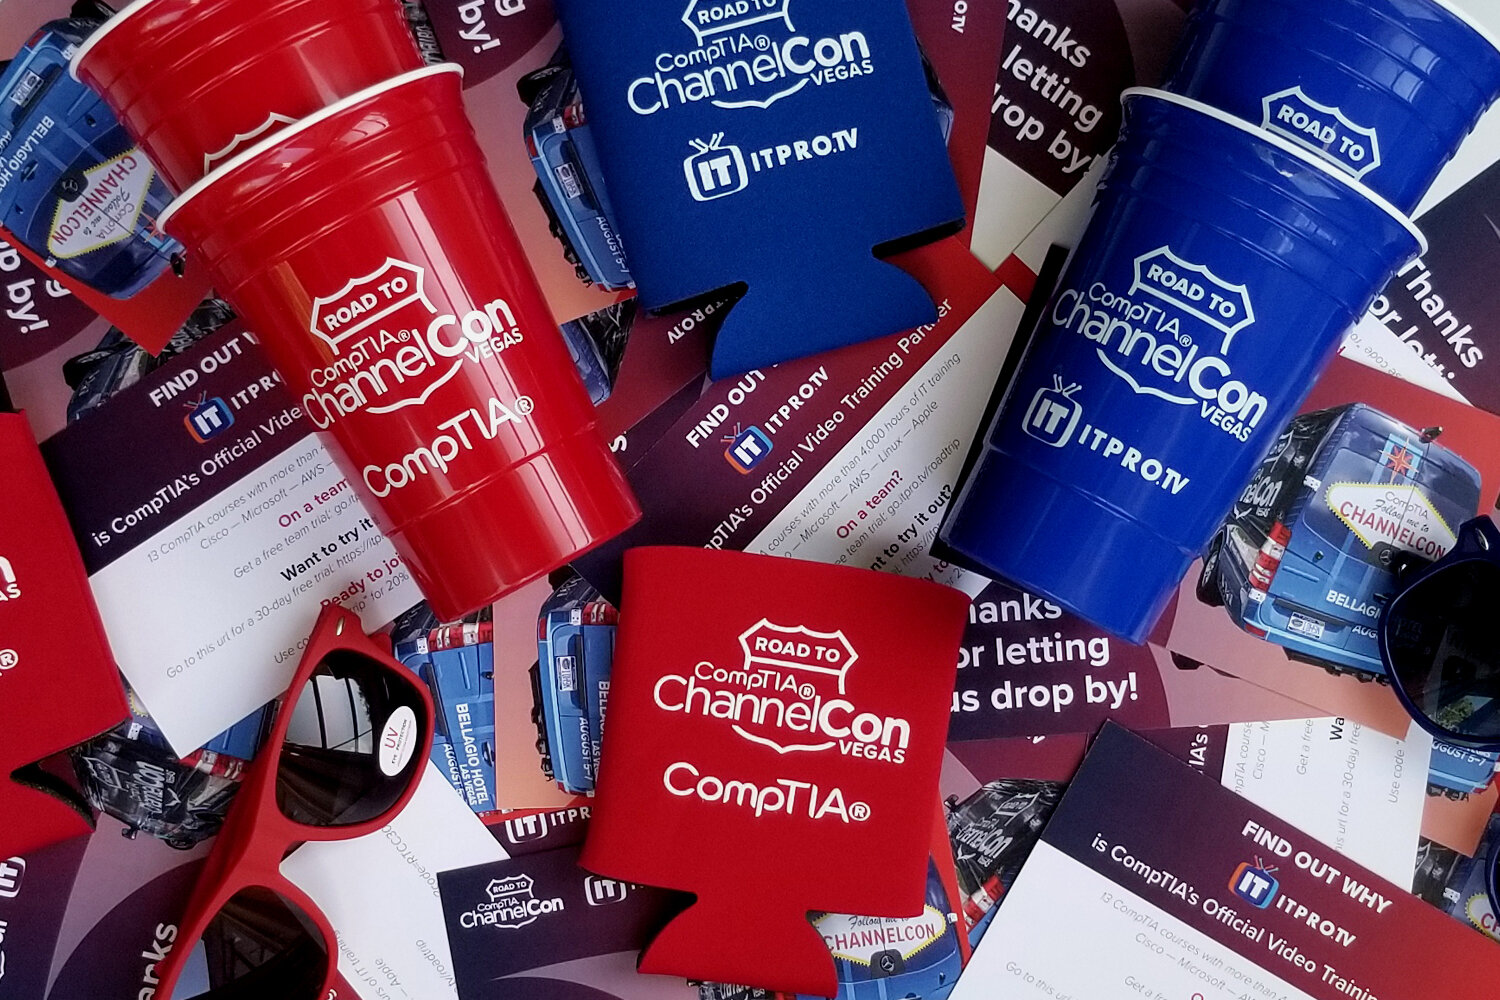 The swag - We ordered two versions of each swag piece — one blue and one red for ITProTV and CompTIA, respectively.